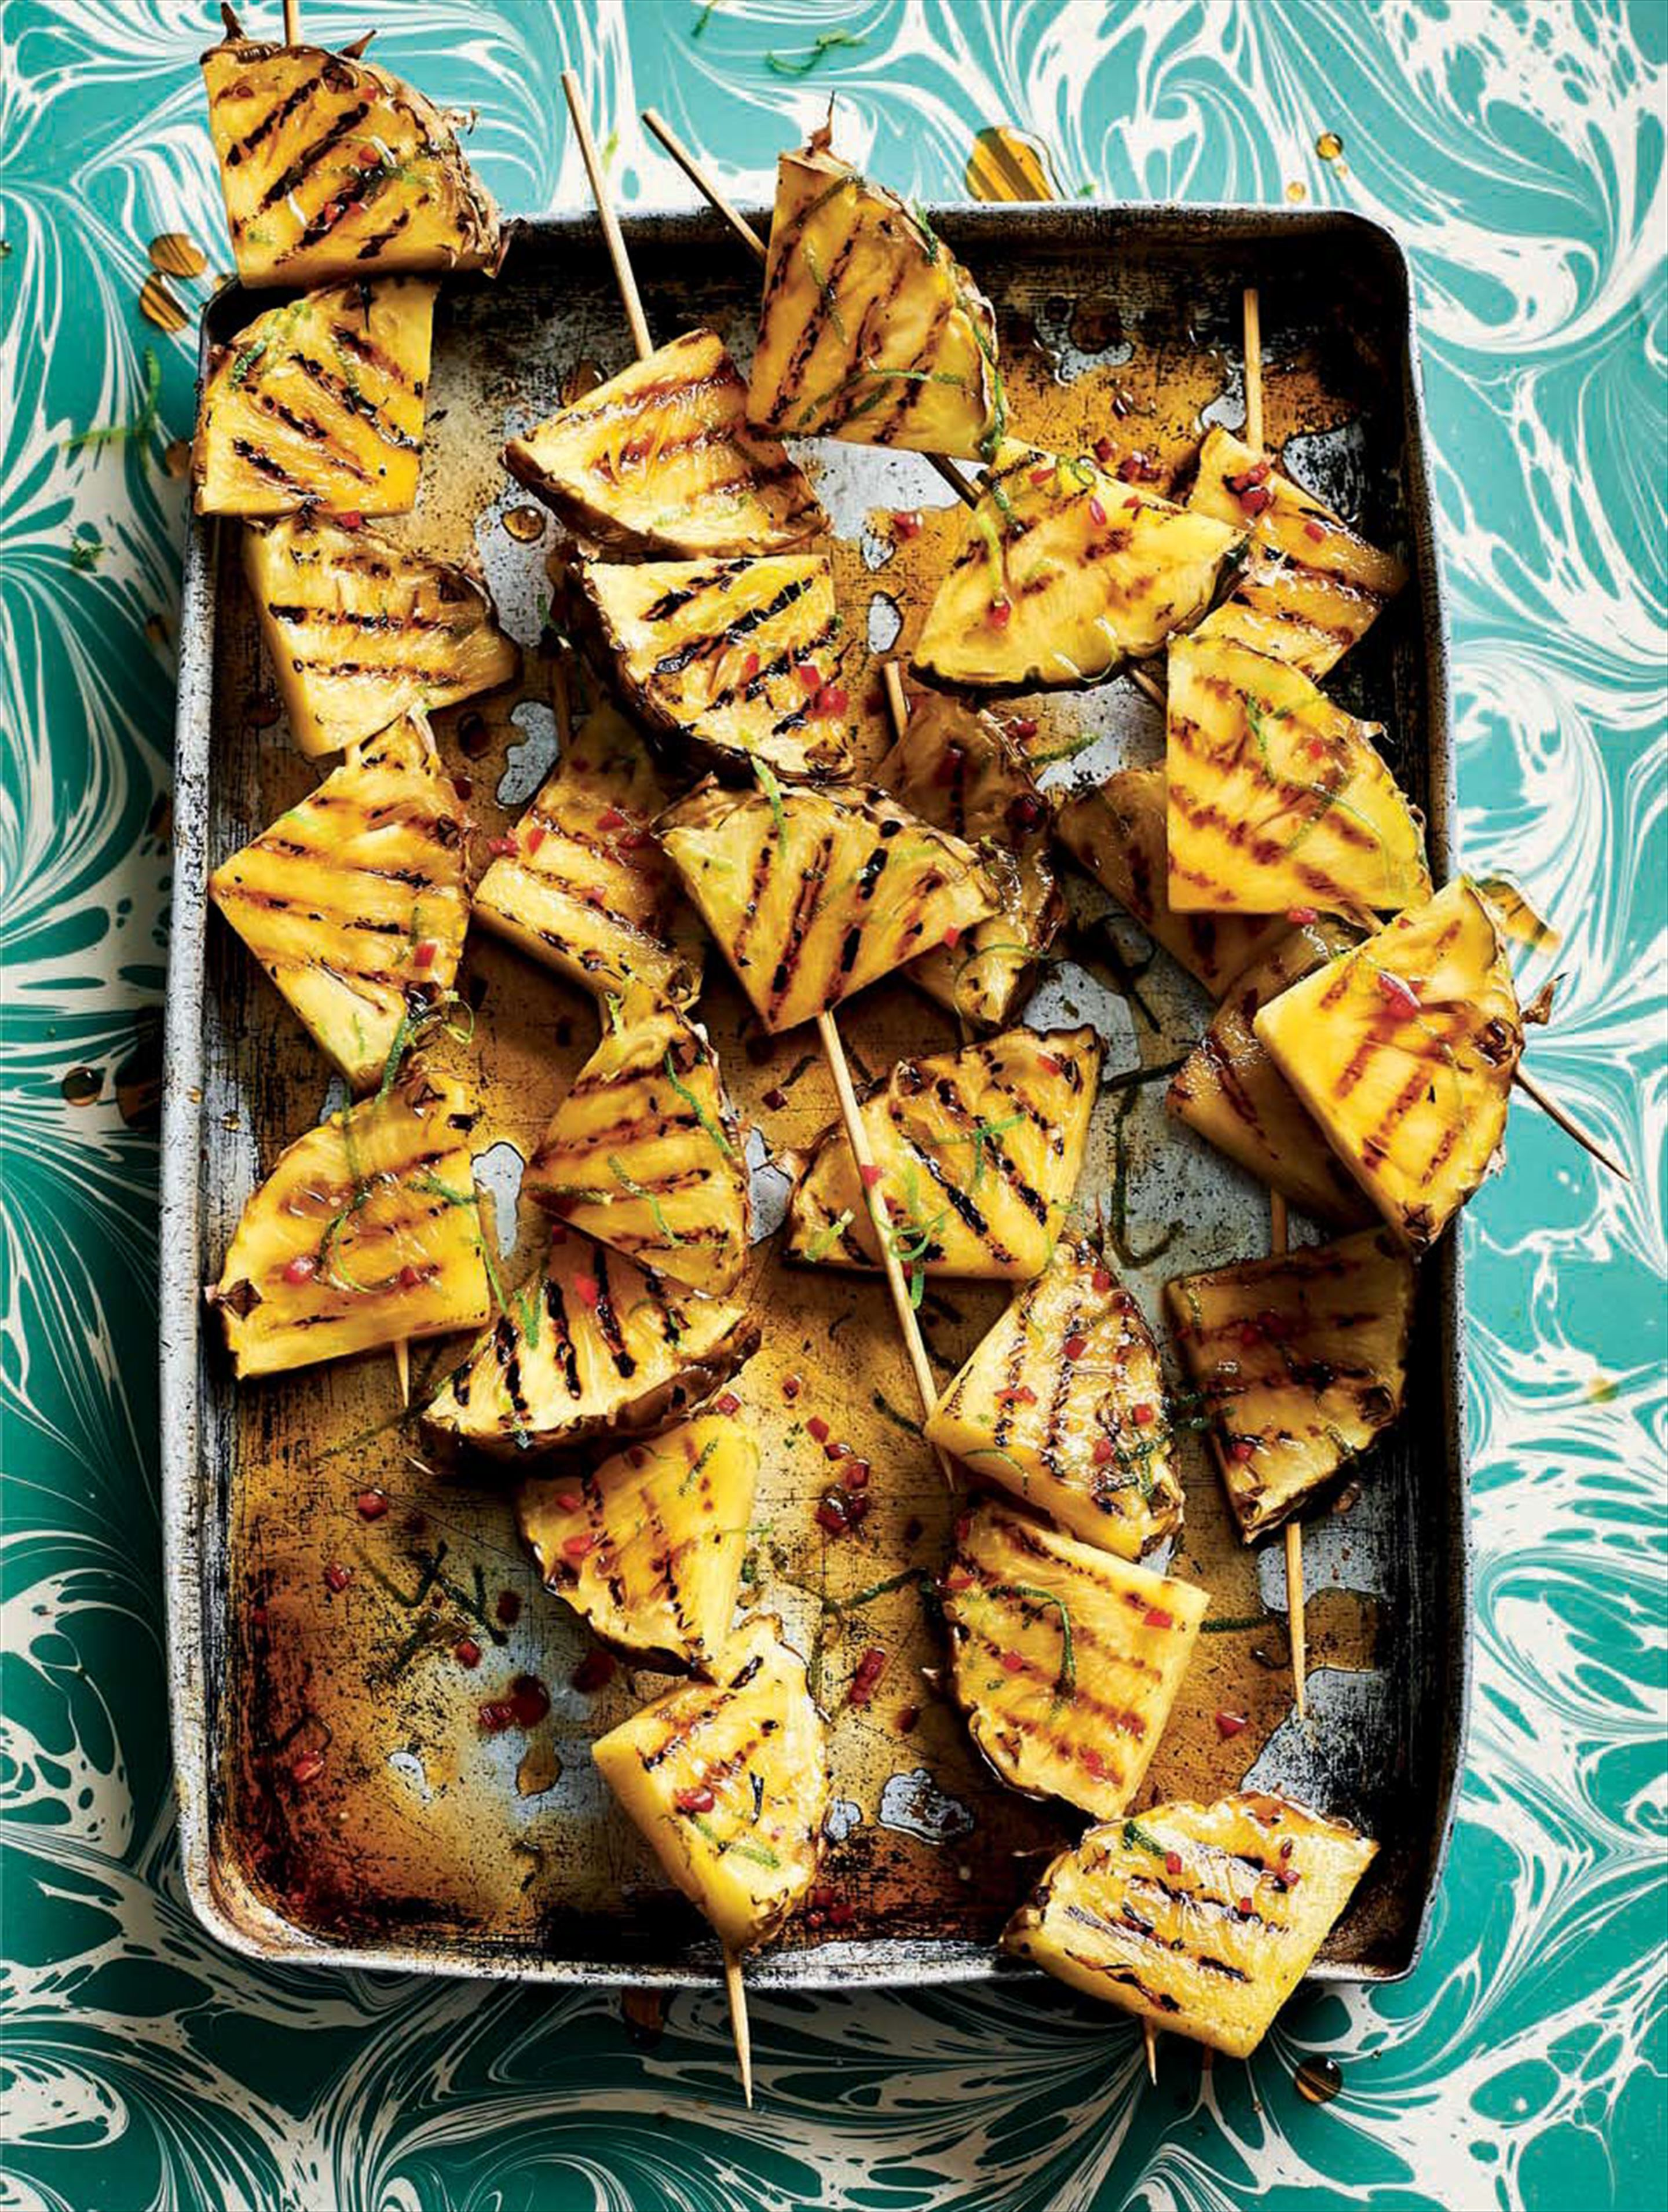 Lime & chilli griddled pineapple